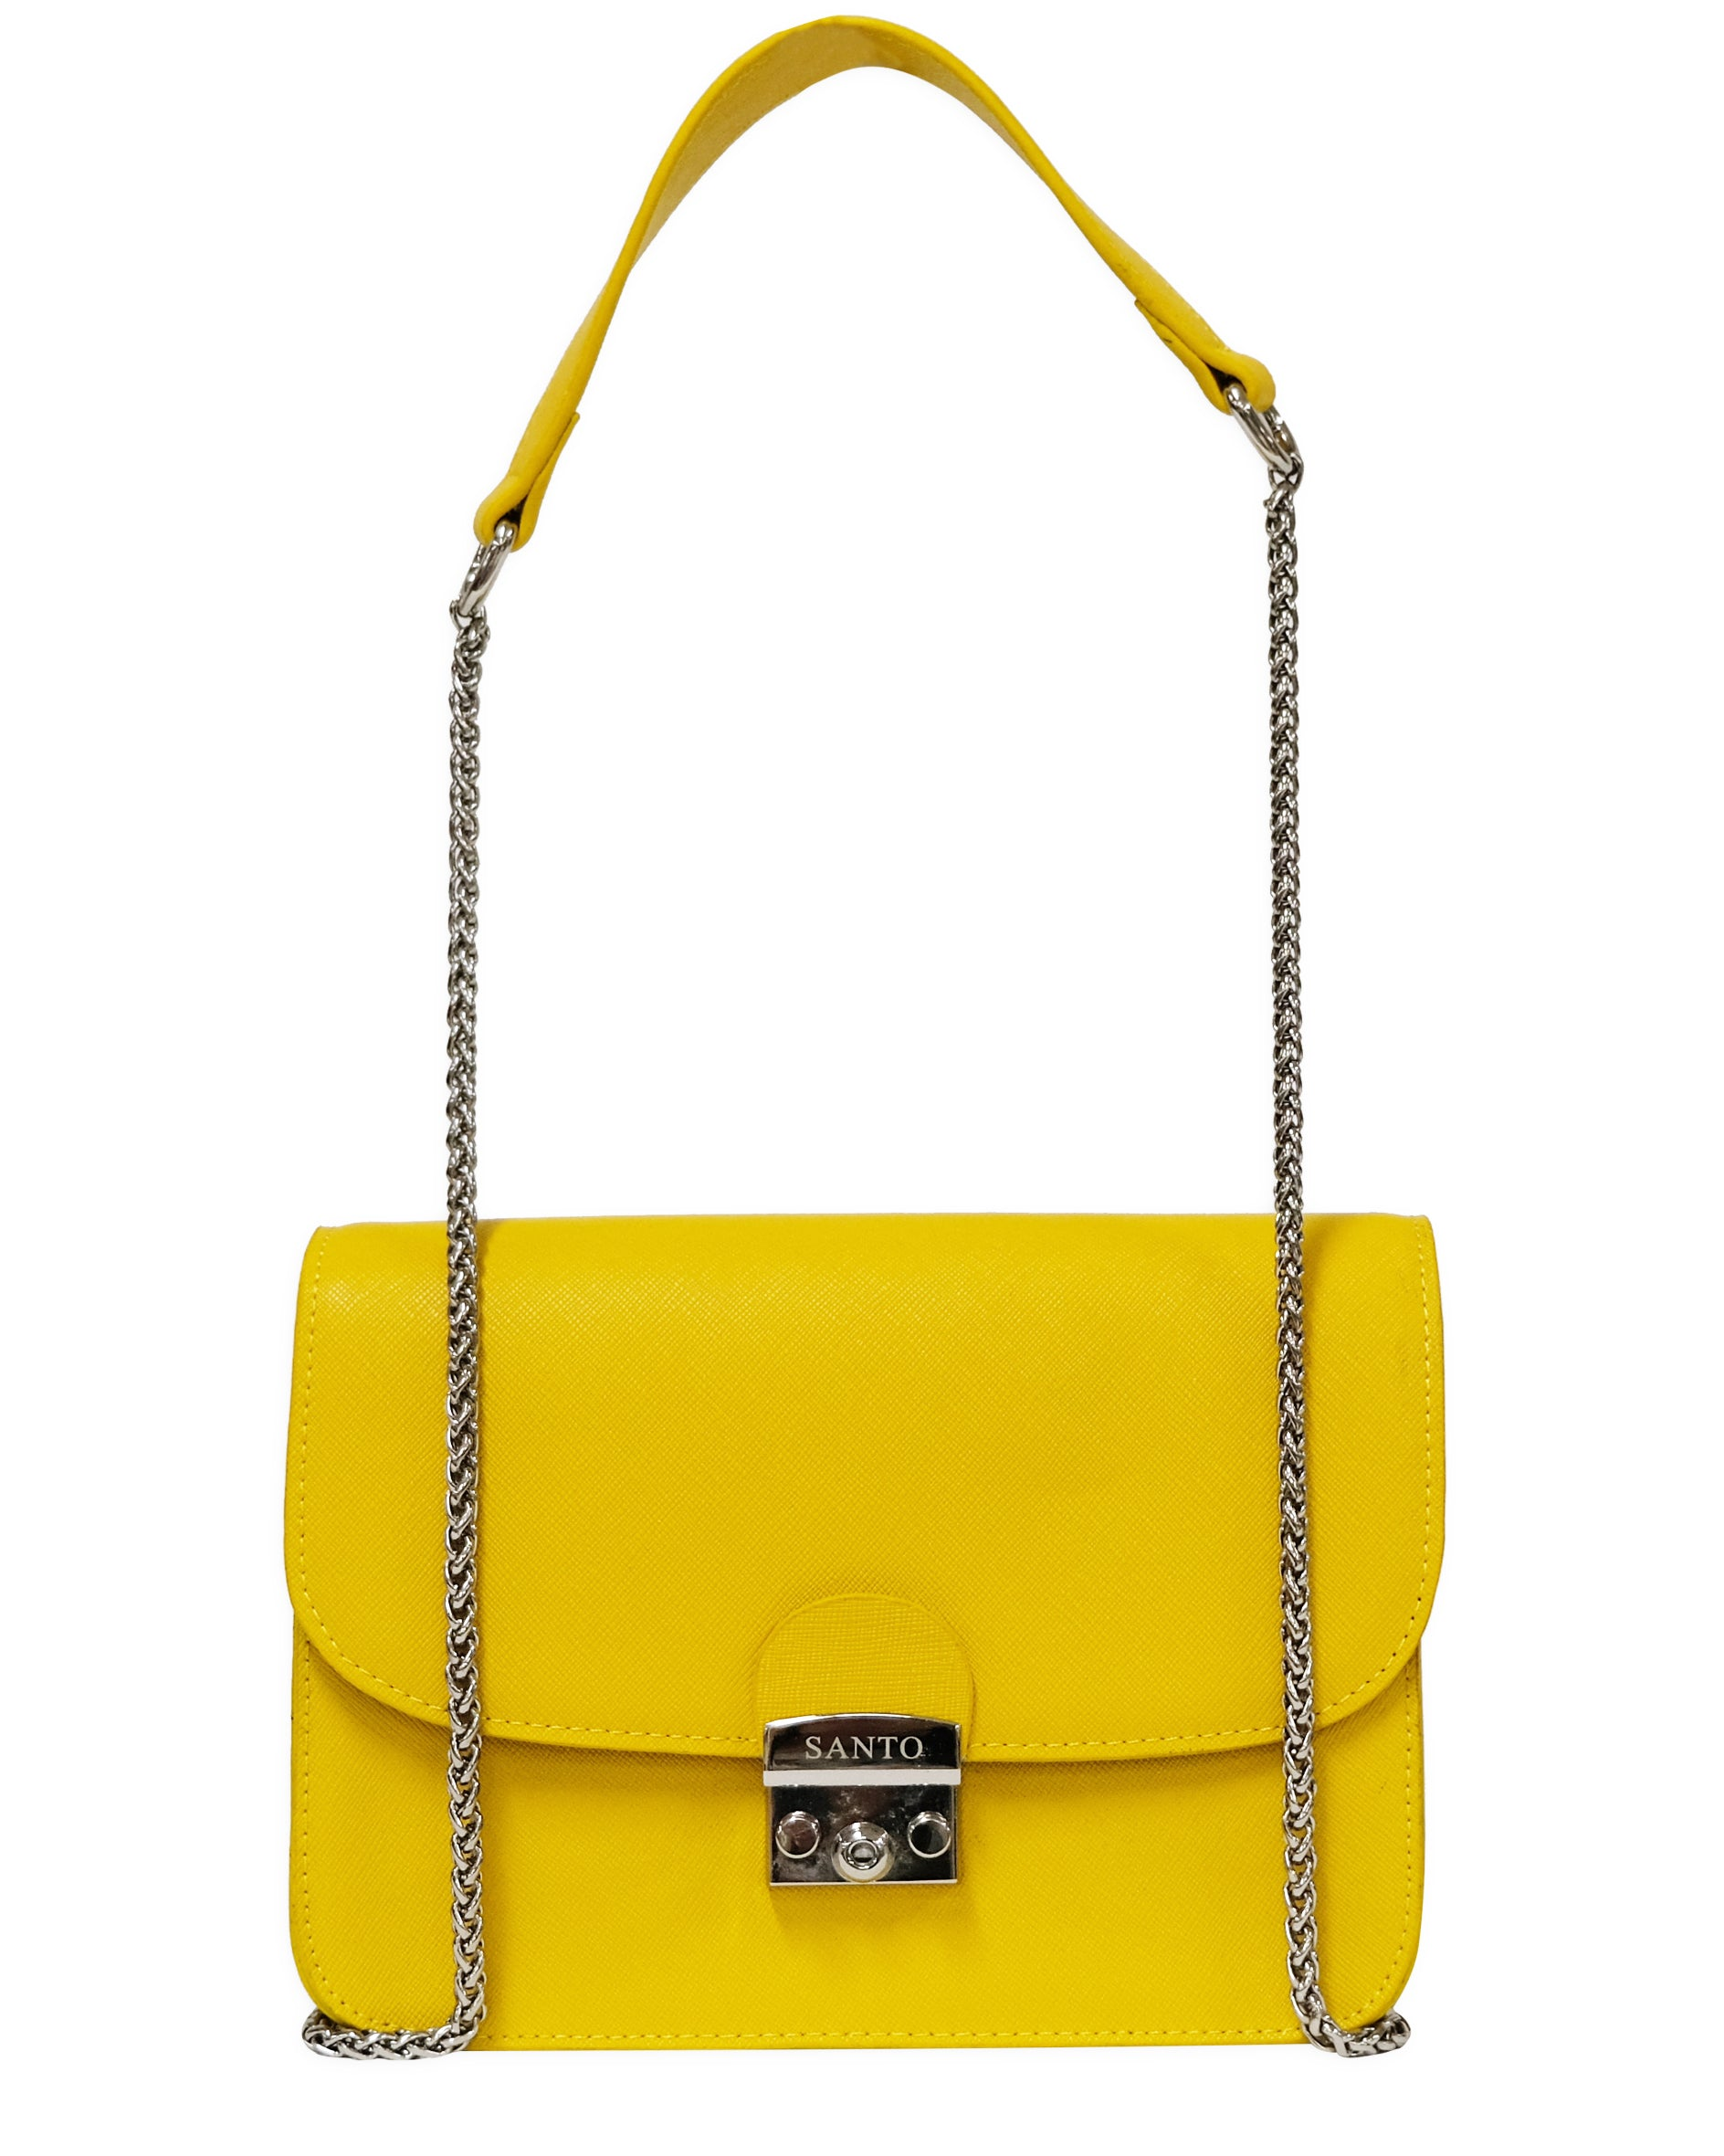 lowest price 2018 sneakers shop for authentic Square Messenger Lock Chain Designer Handbags Yellow